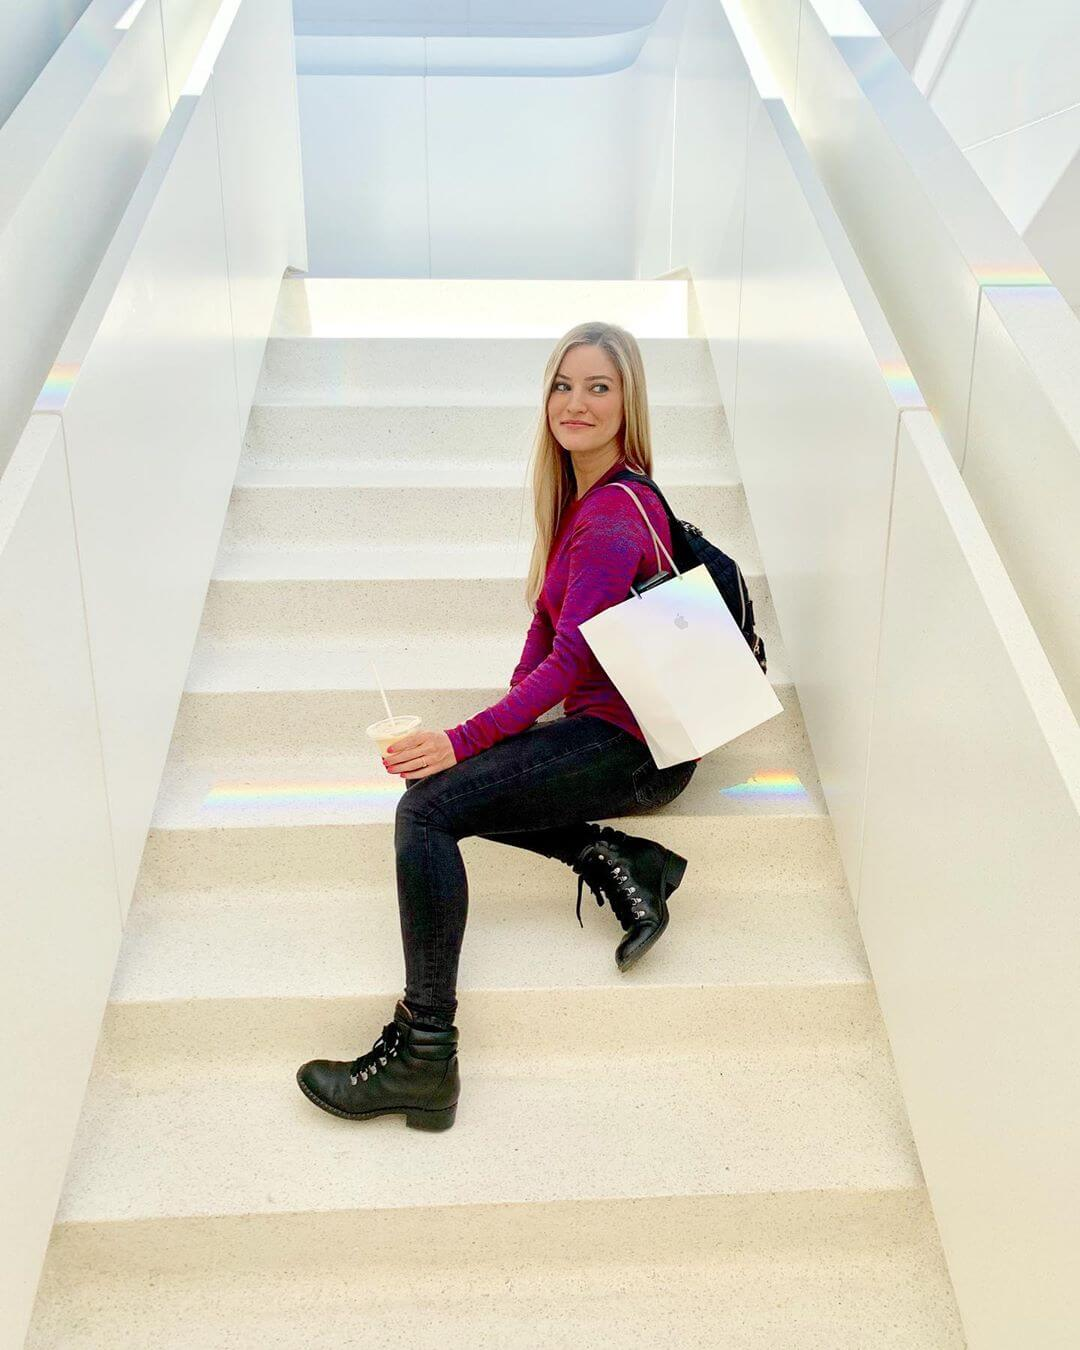 ijustine awesome pic